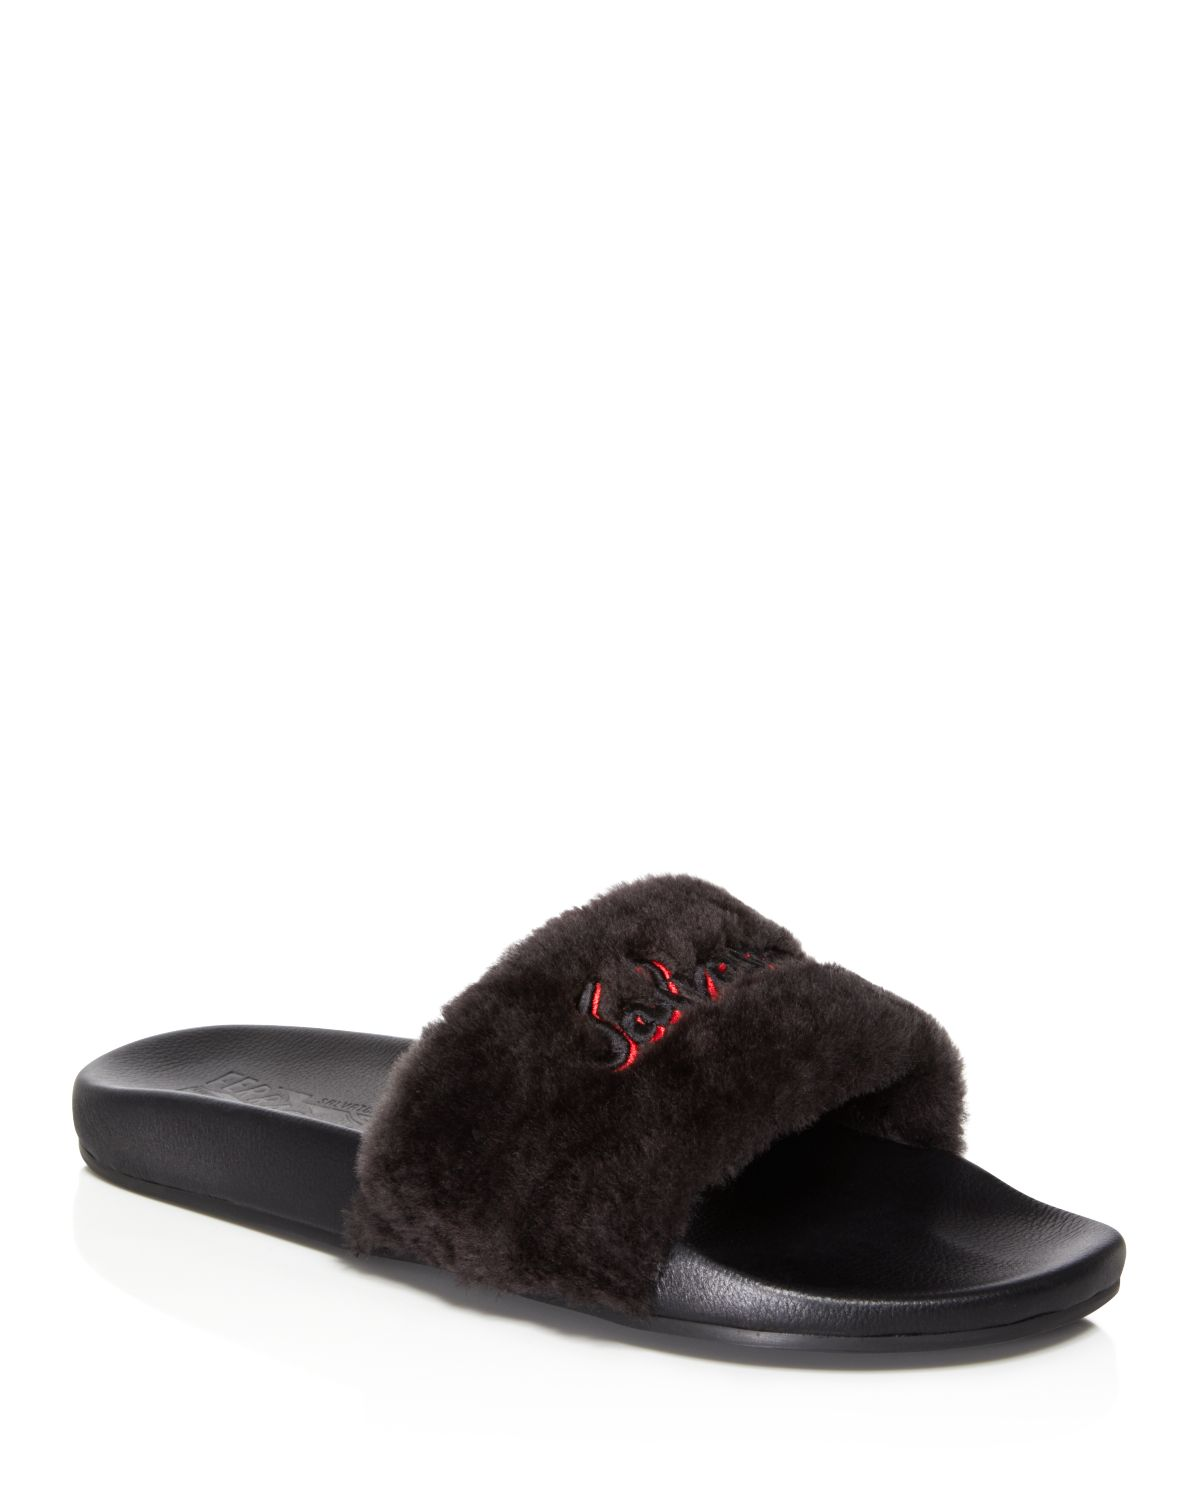 Salvatore Ferragamo Men's Don Shearling Slide Sandals